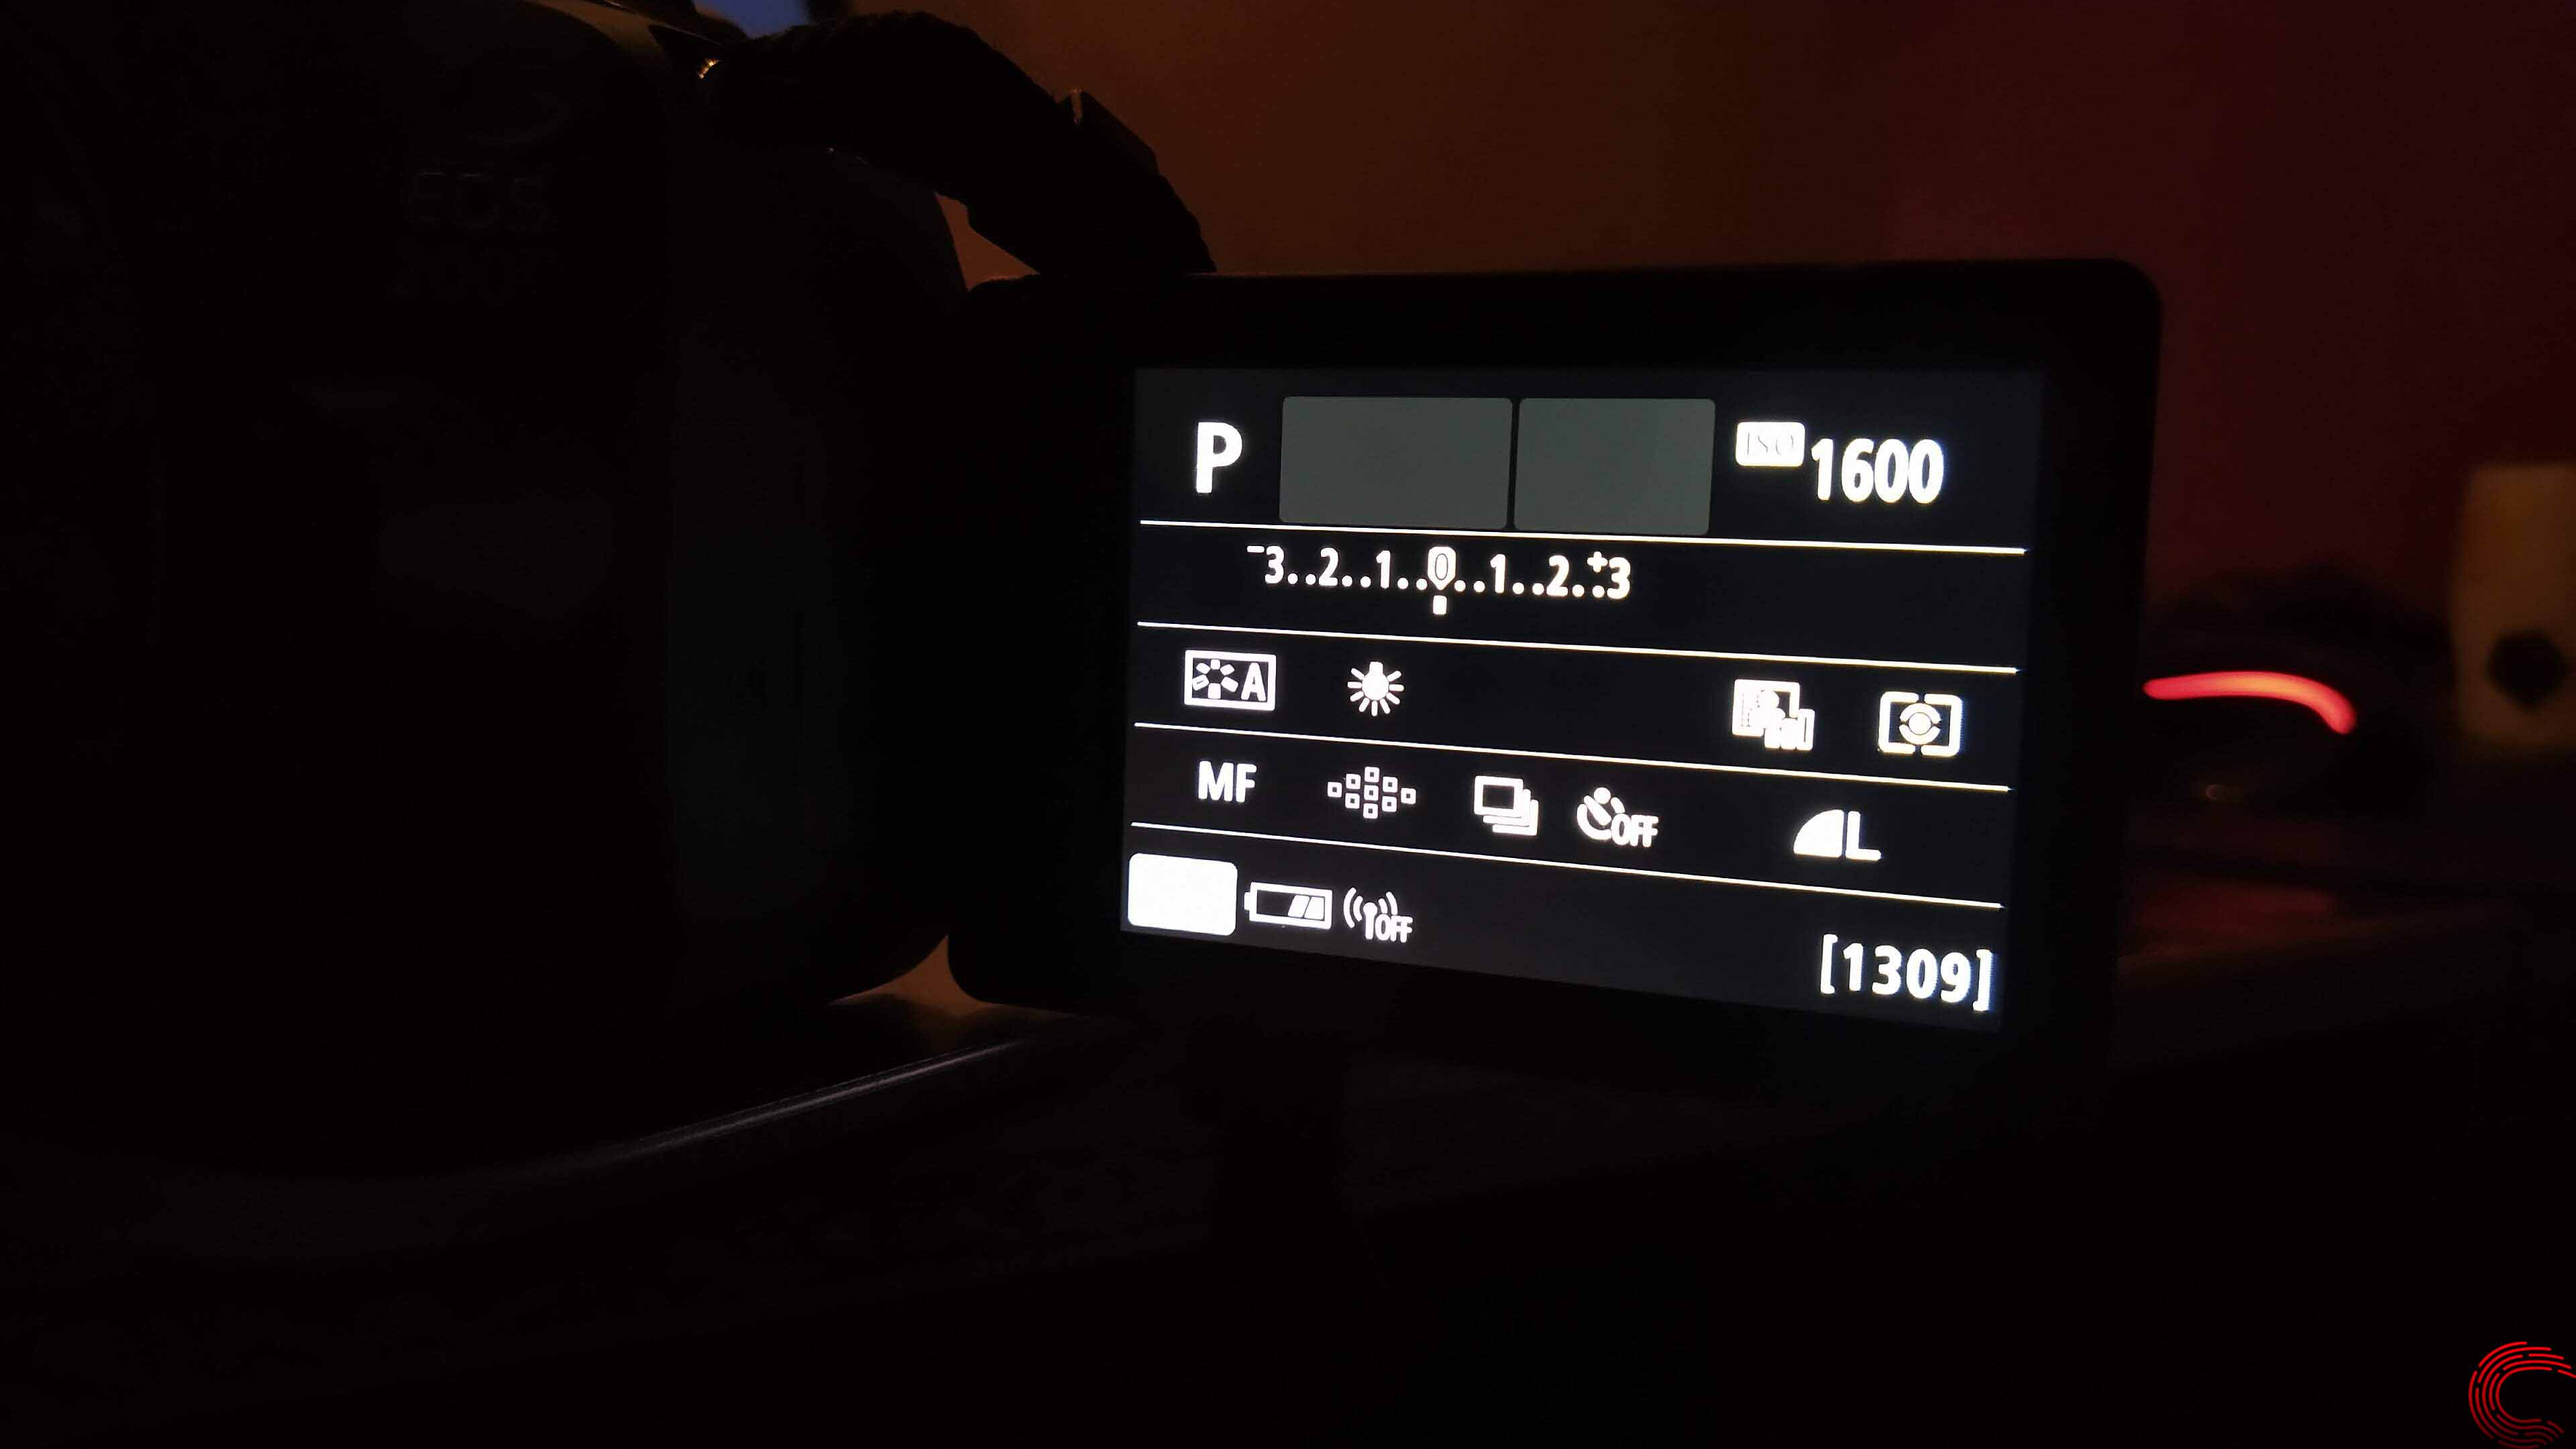 Manual, Aperture Priority , Shutter Speed Priority, Auto Modes explained